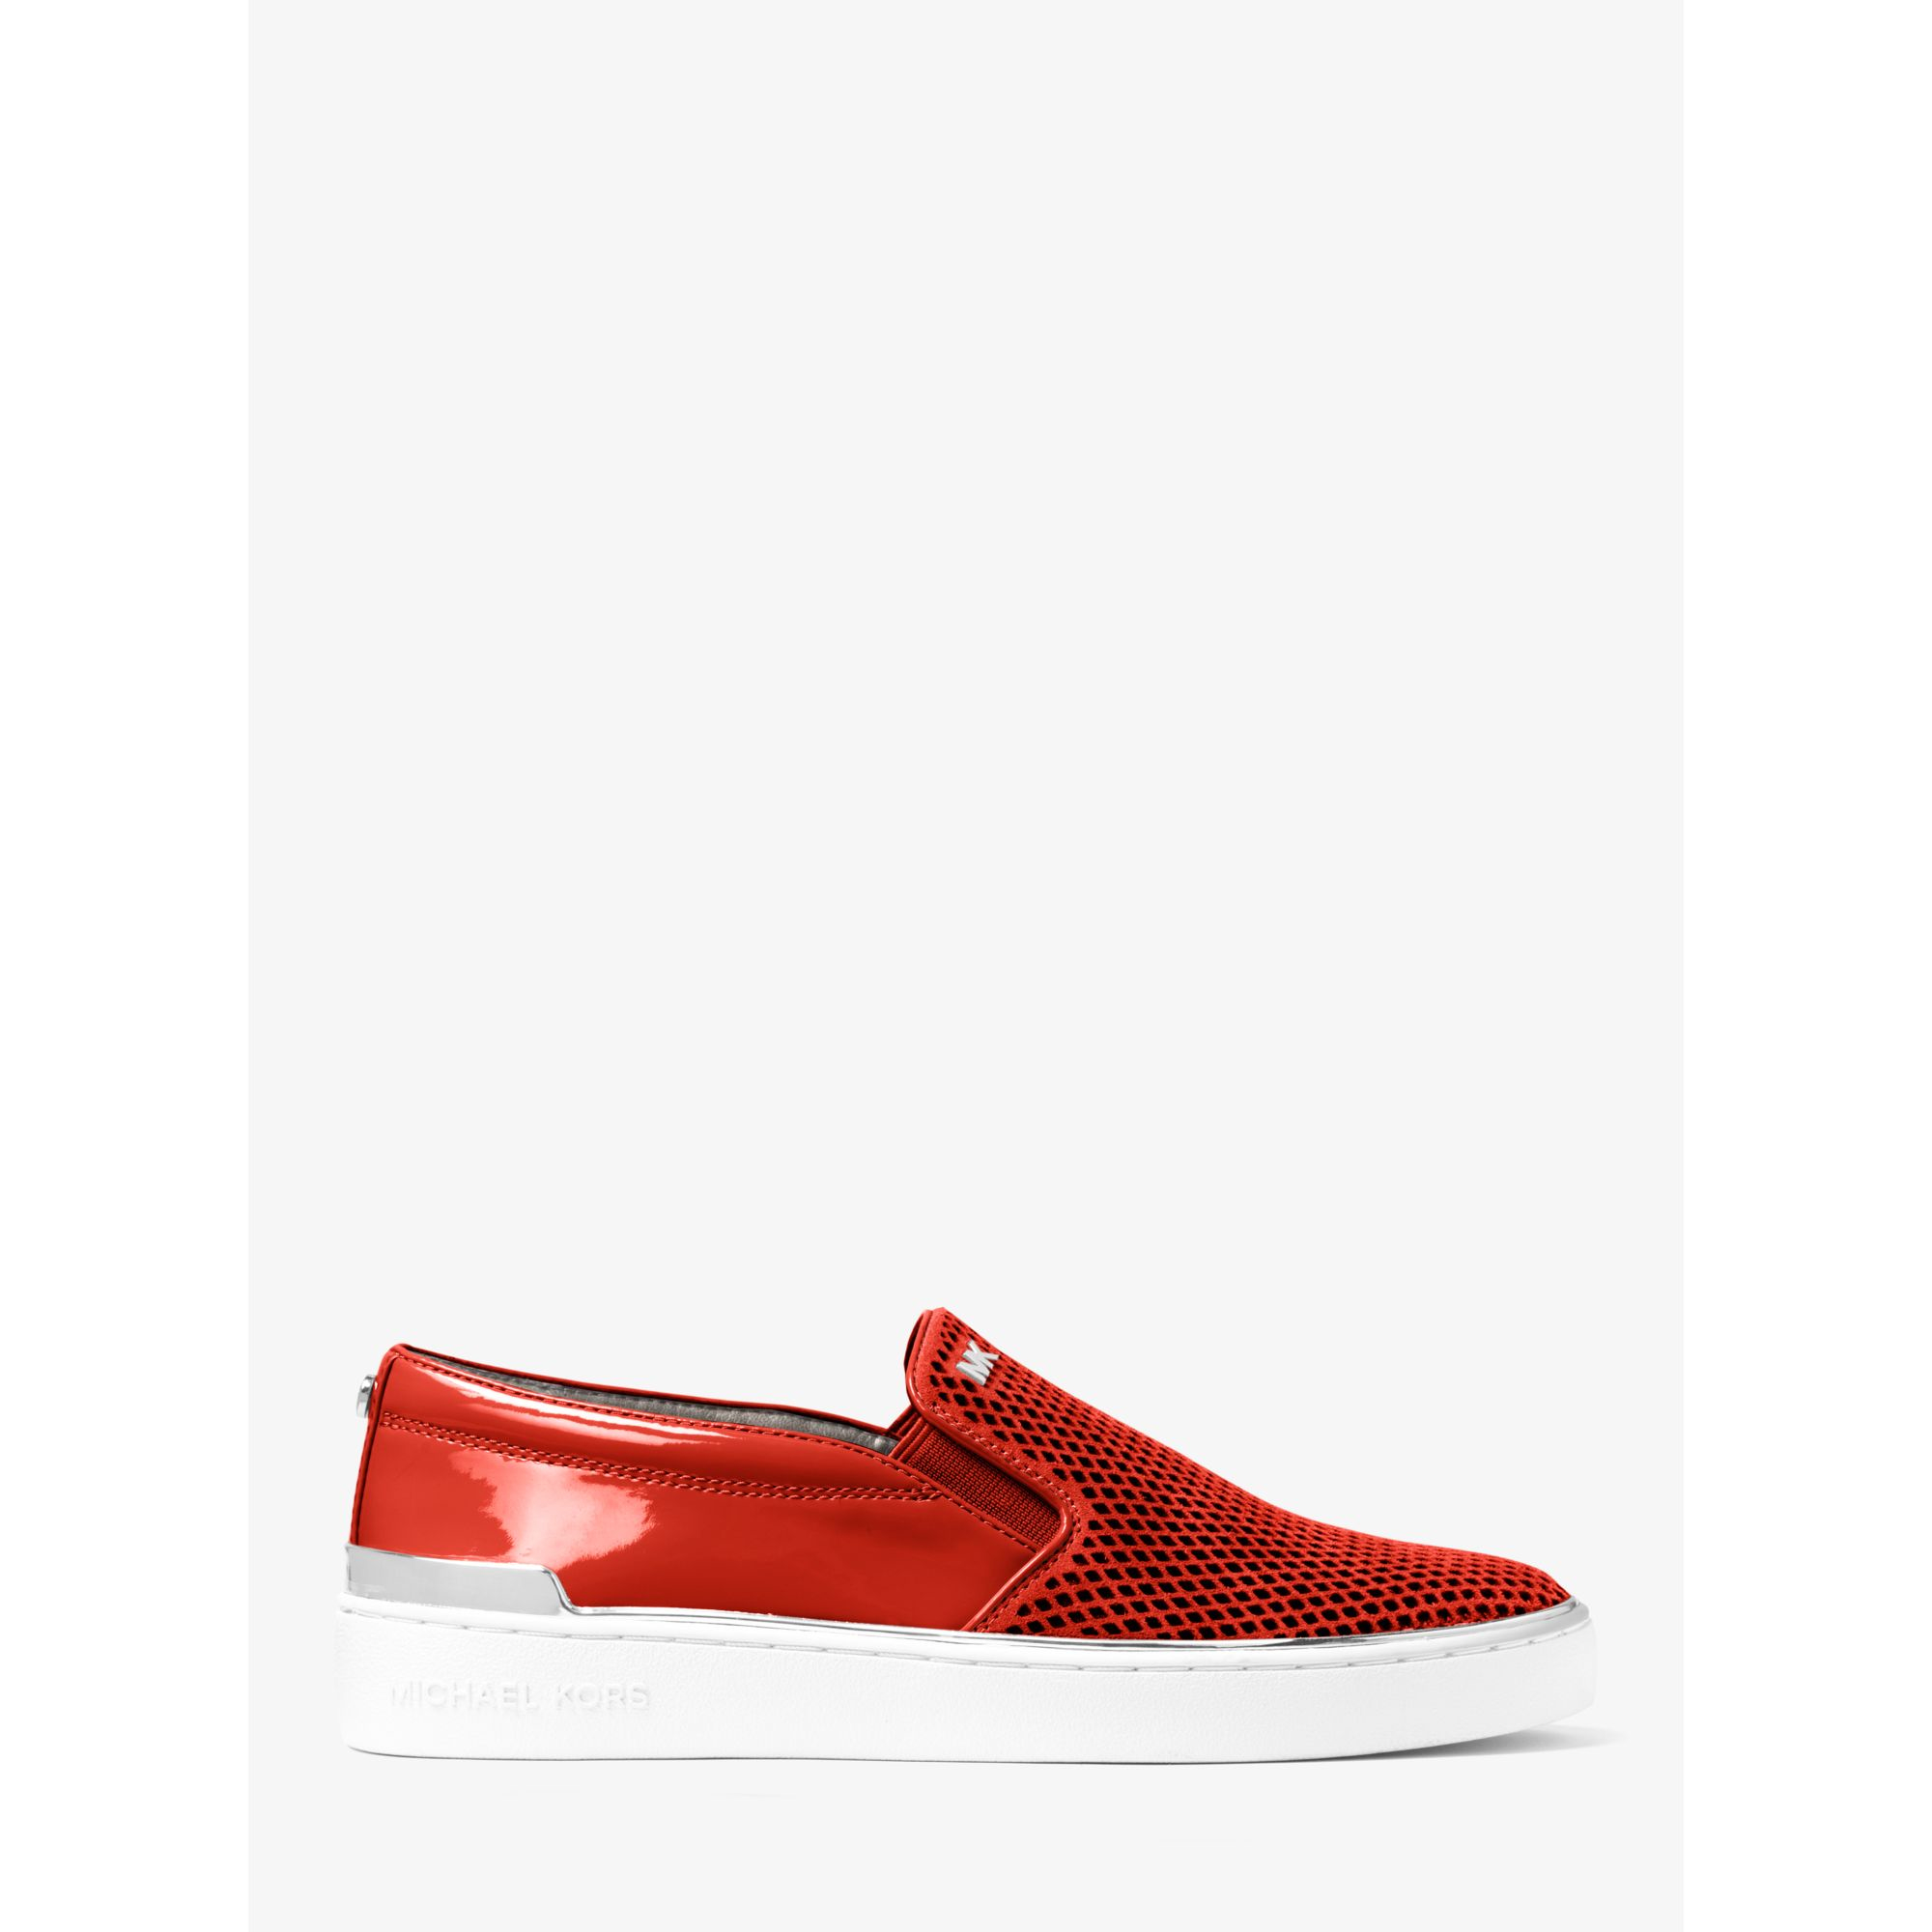 42b1f16fc3683 Lyst - Michael Kors Kyle Perforated Suede Slip-on Sneaker in Red